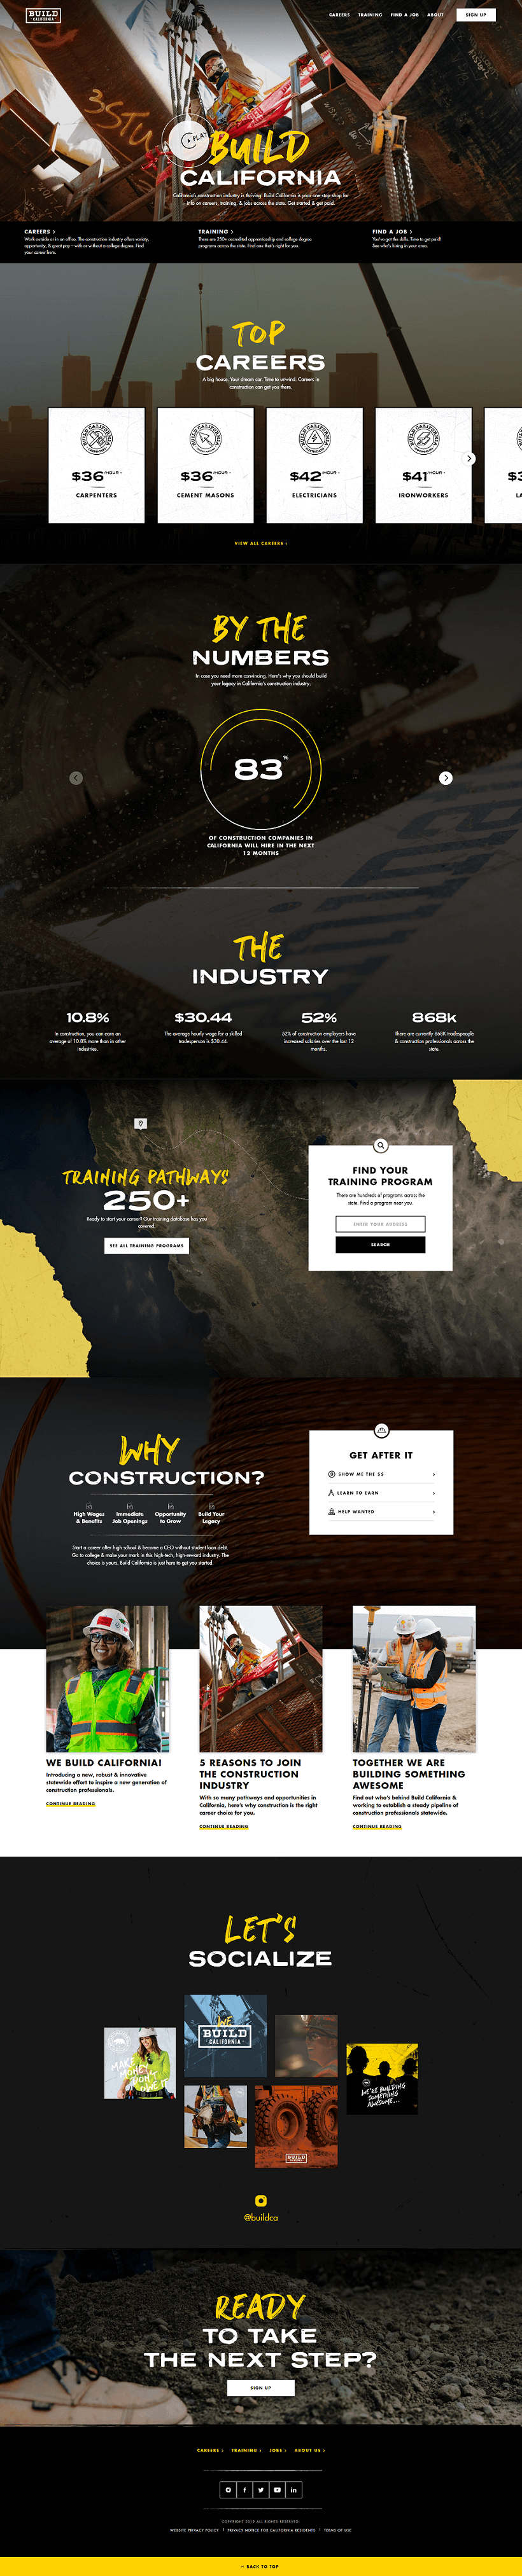 Build California site home page